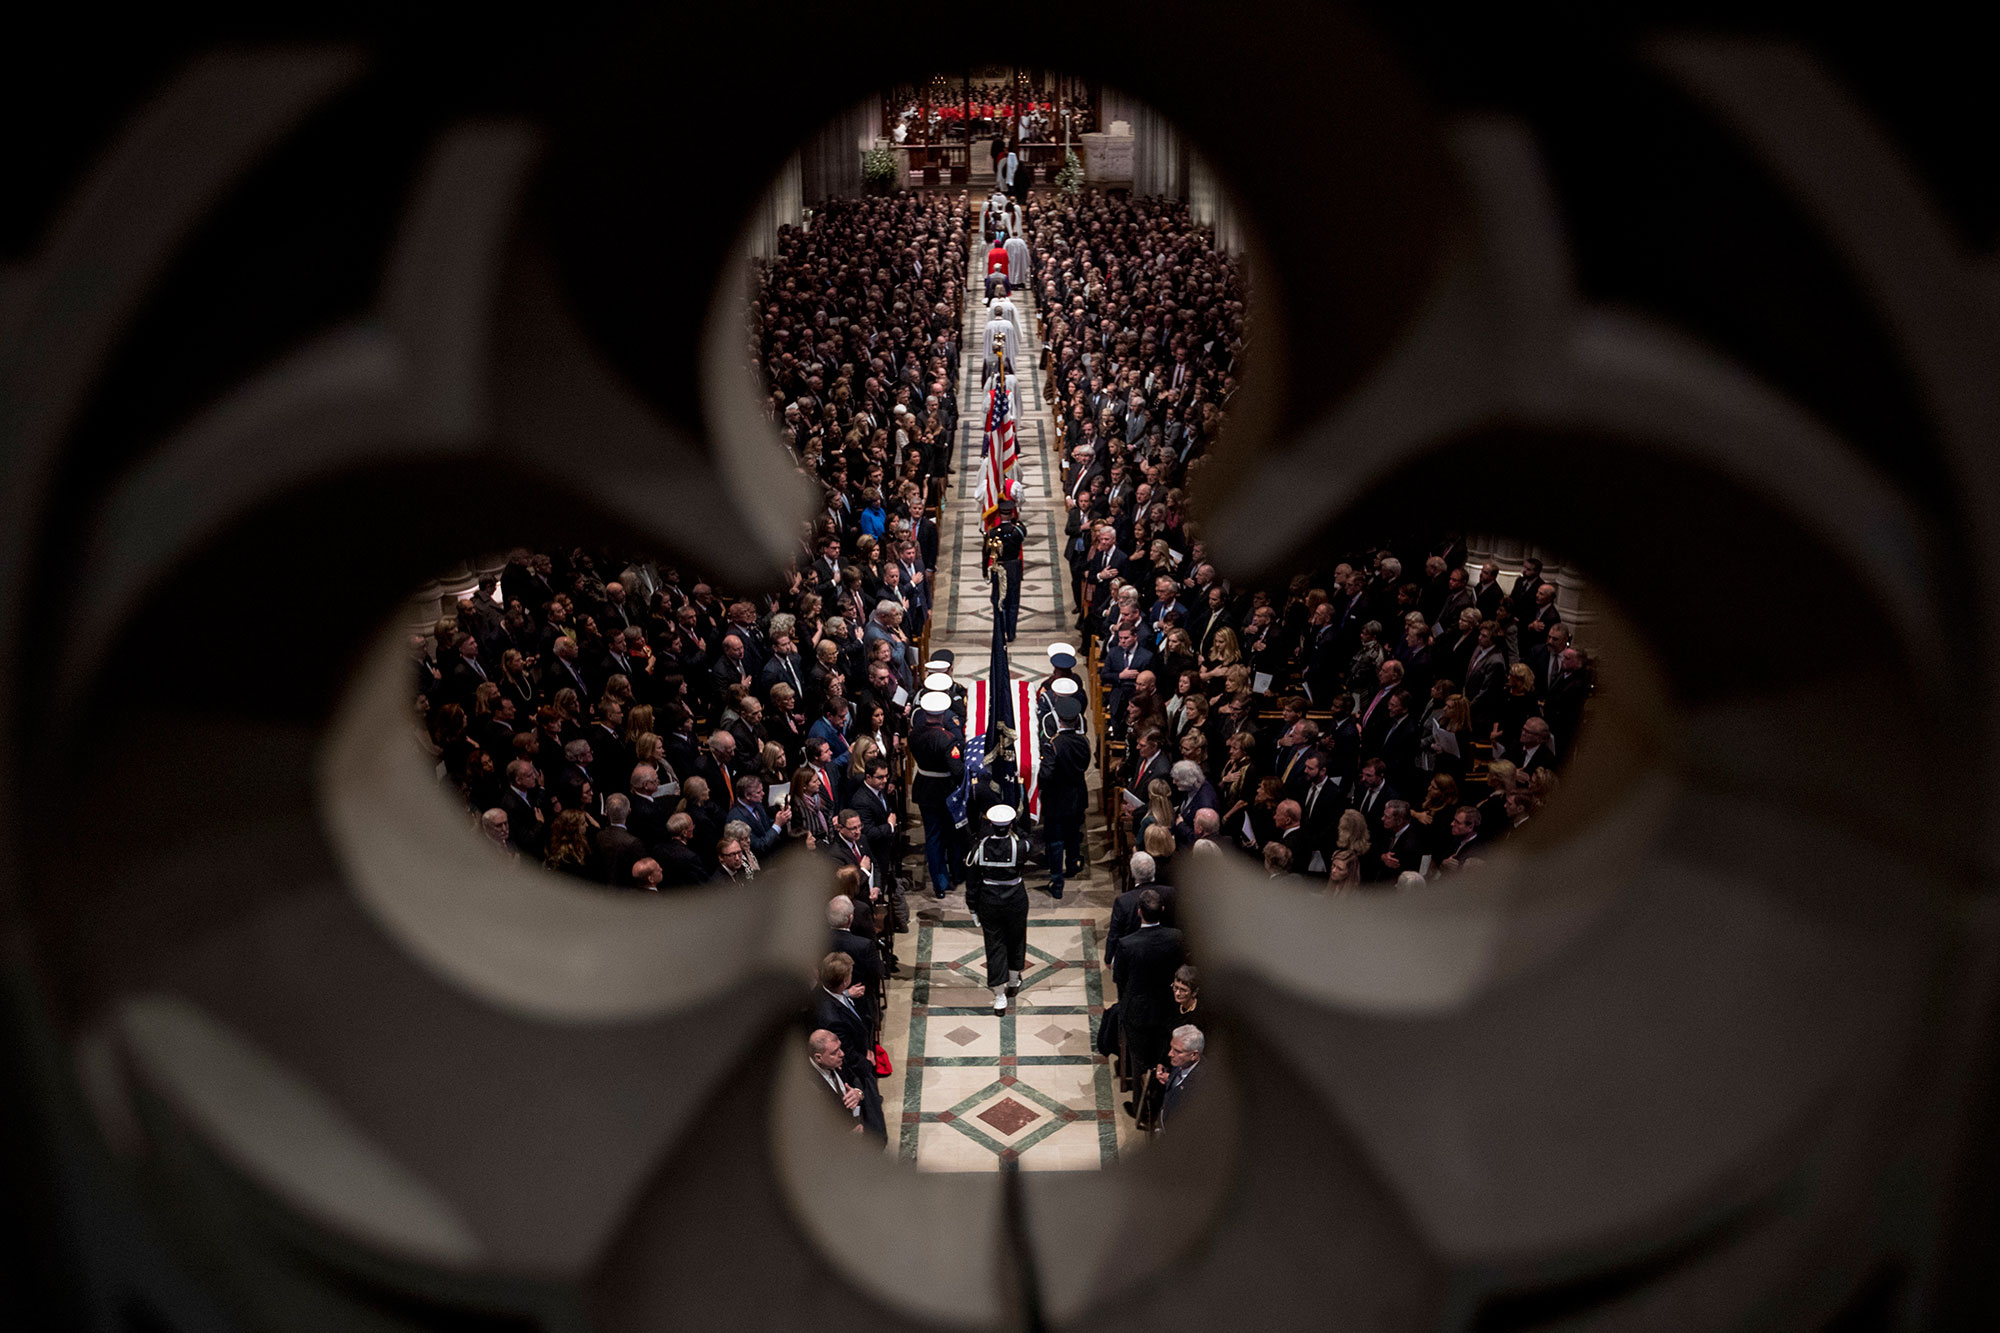 "<div class=""meta image-caption""><div class=""origin-logo origin-image none""><span>none</span></div><span class=""caption-text"">The flag-draped casket of former President George H.W. Bush is arrives carried by a military honor guard during a State Funeral at the National Cathedral. (Andrew Harnik, Pool/AP Photo)</span></div>"